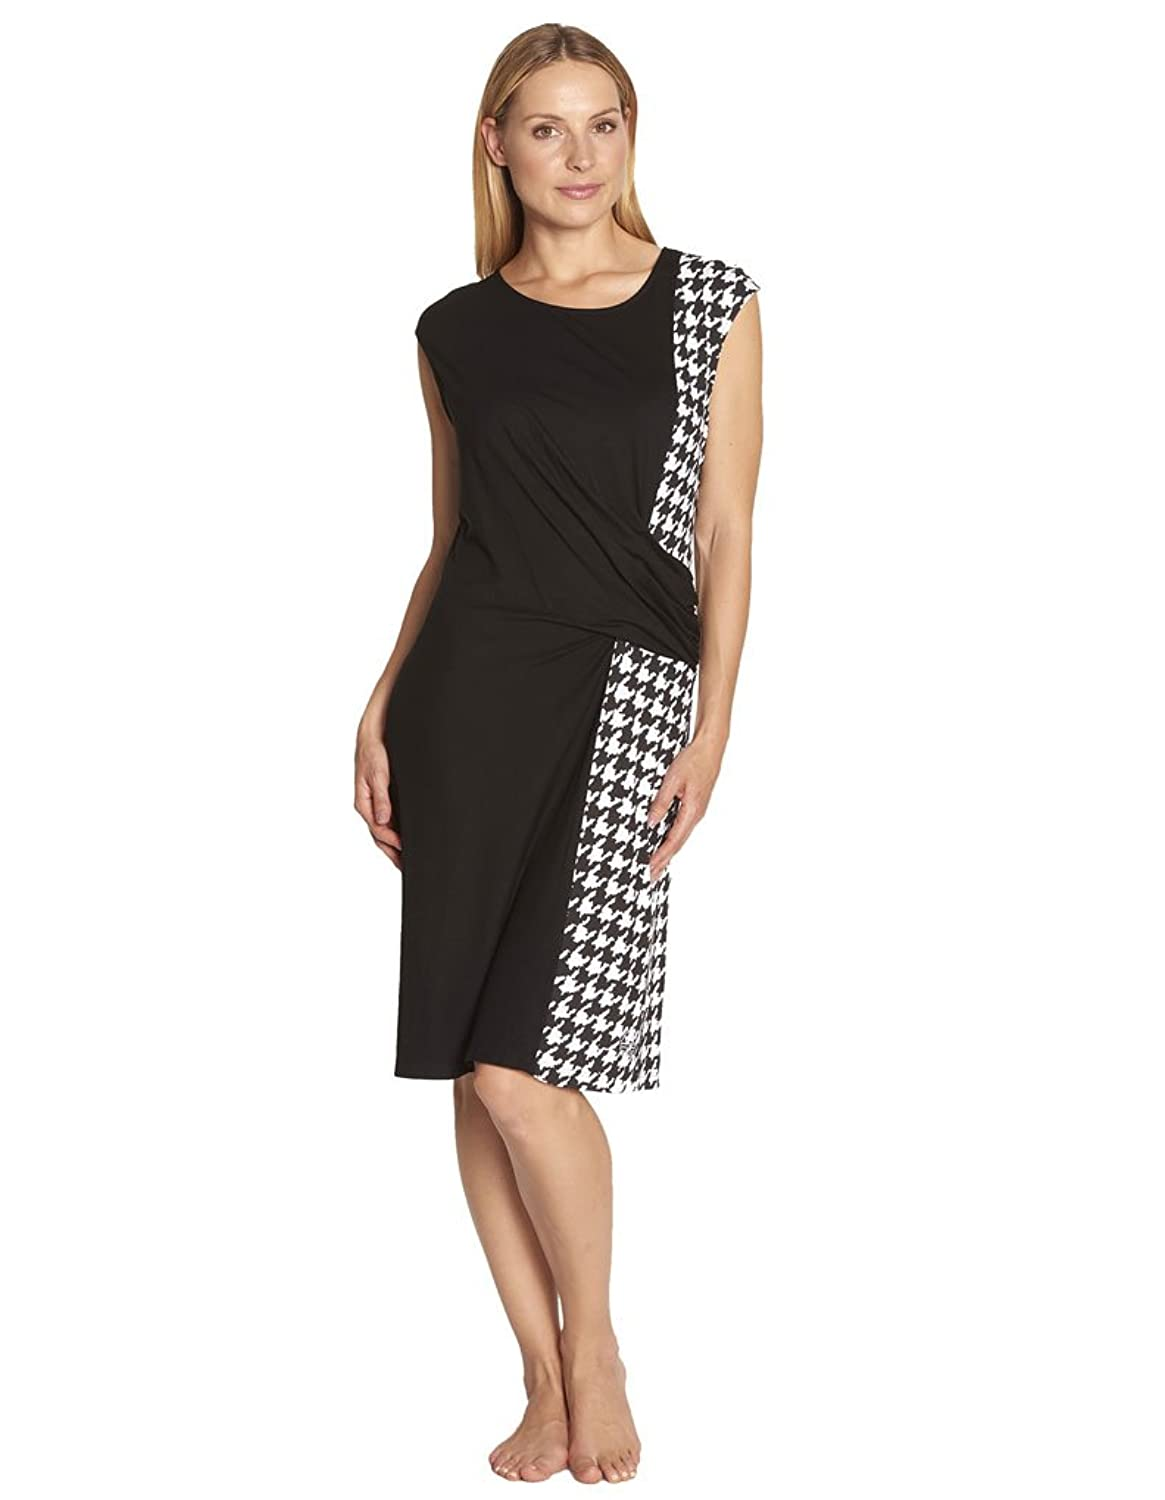 Feraud 3175069-10176 Women's Black and White Houndstooth Cover Up Beach Dress